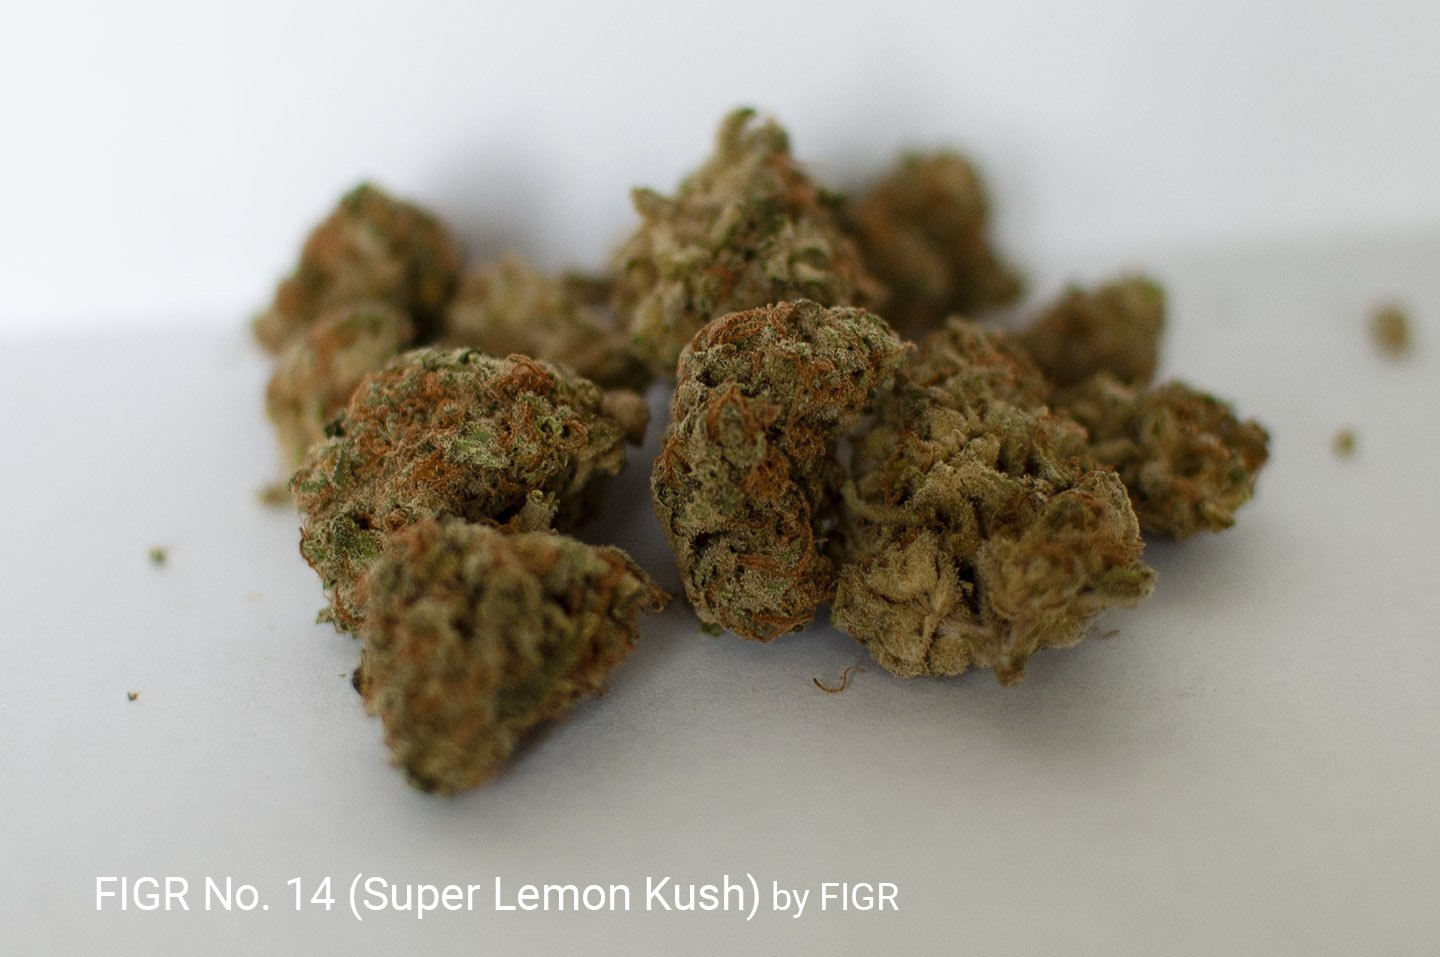 Super Lemon Kush